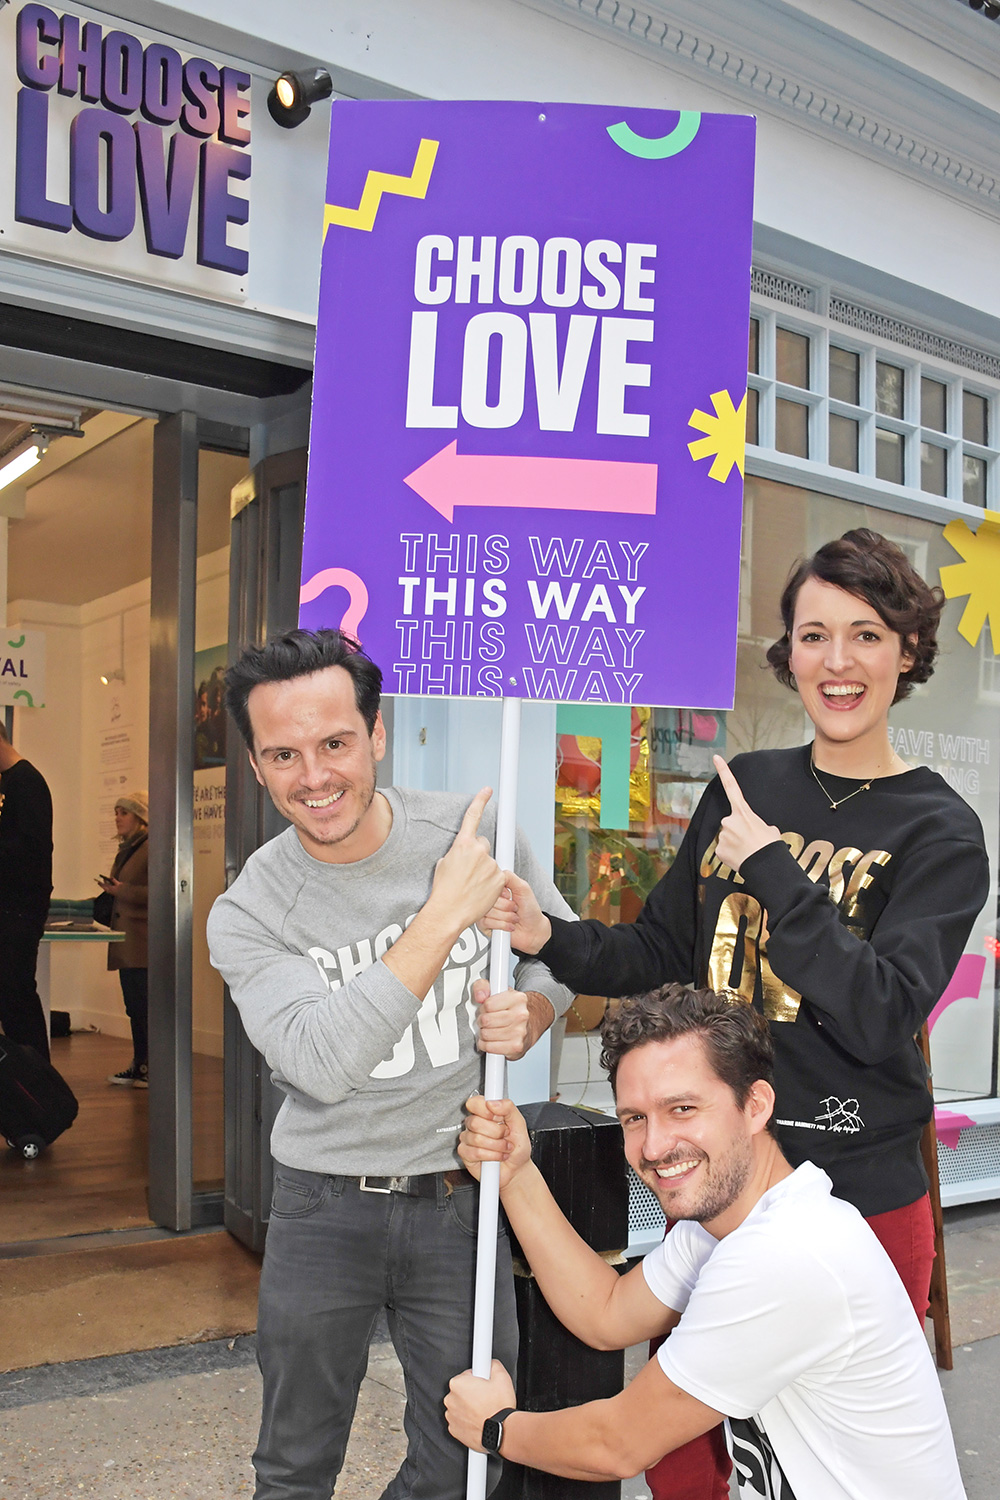 Andrew Scott, Ben Aldridge and Phoebe Waller-Bridge volunteer during Match Fund day at the 'Choose Love' shop for Help Refugees in Covent Garden on December 13, 2019 in London, England